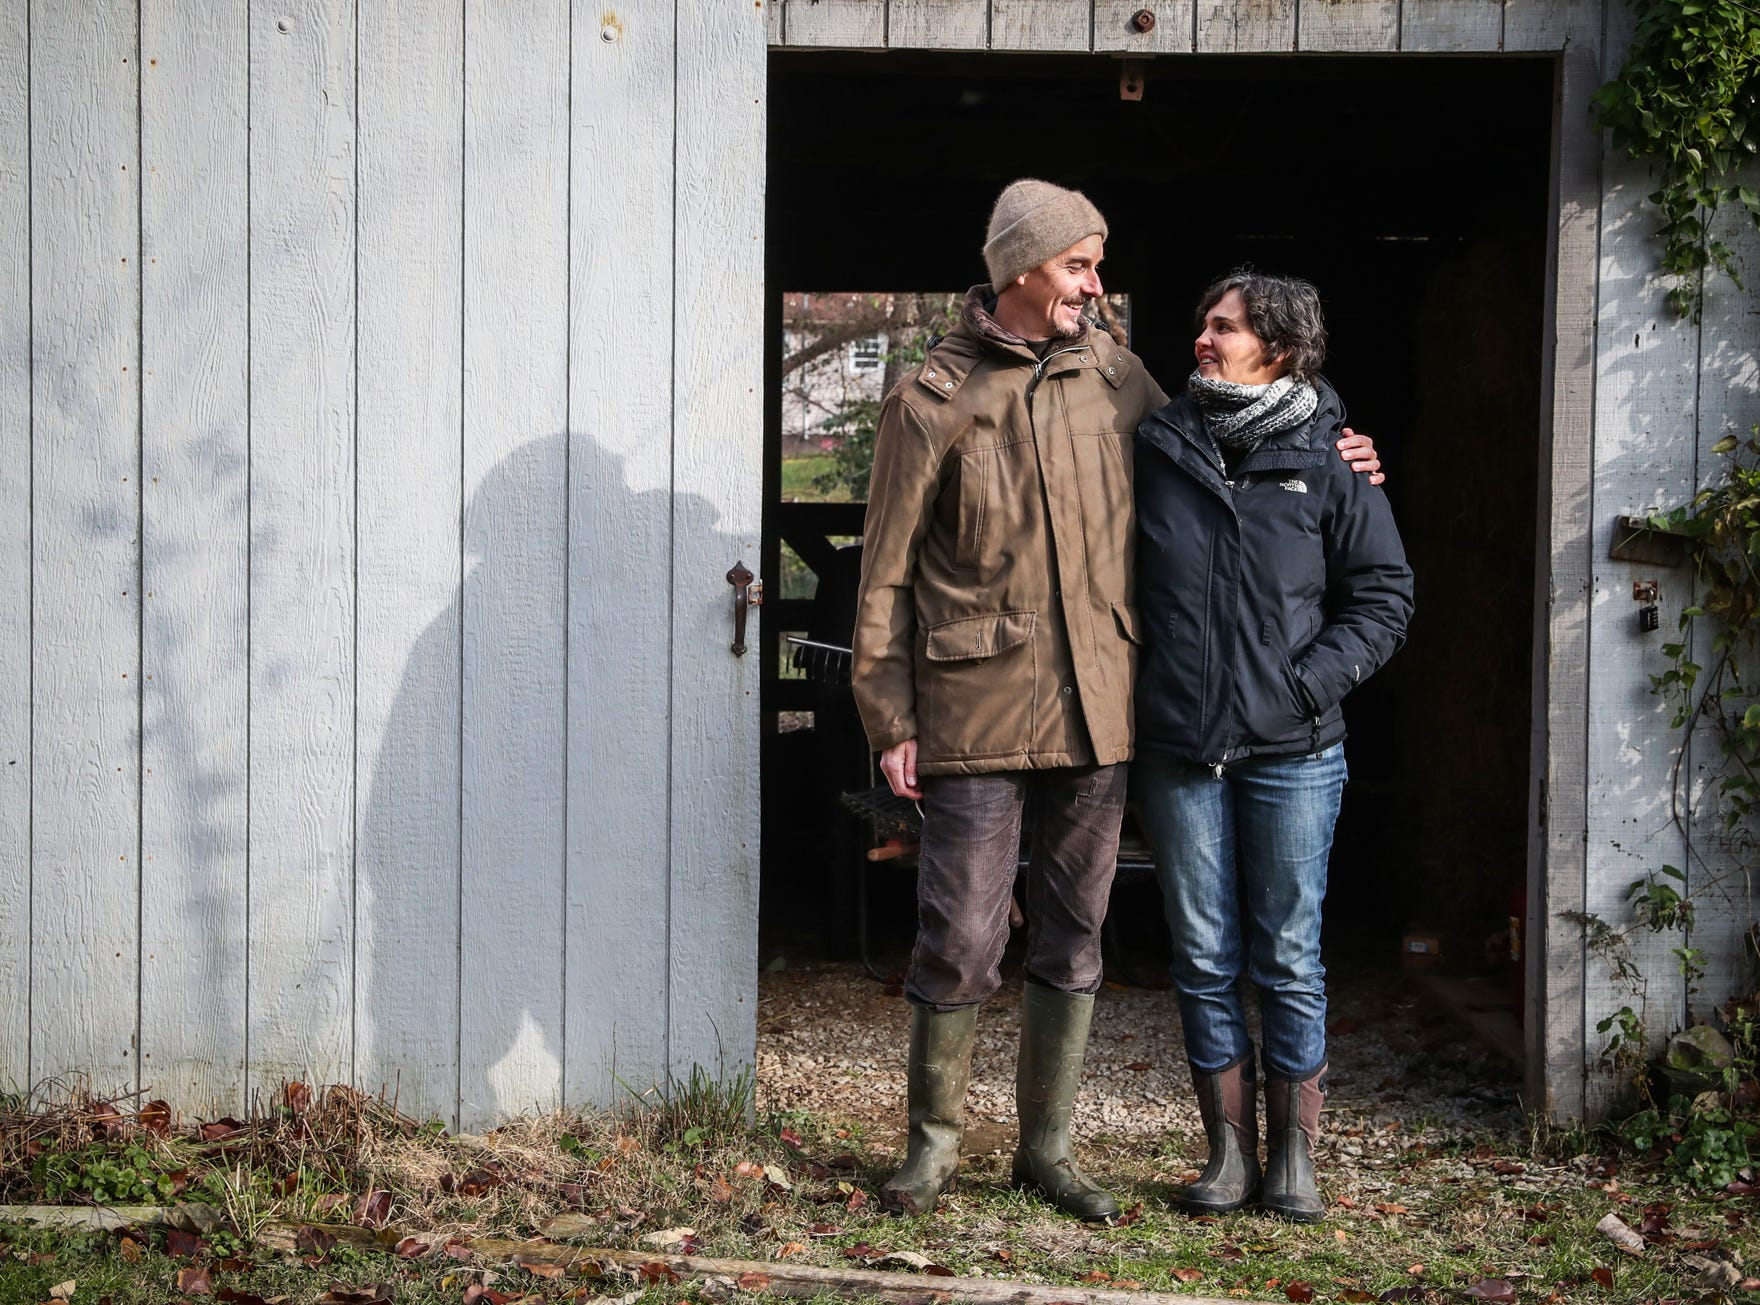 Adam and Emmanuelle Schwarz share a laugh while posing for a portrait in front of a small barn on their property in Carmel, Ind., on Friday, Nov. 16, 2018.